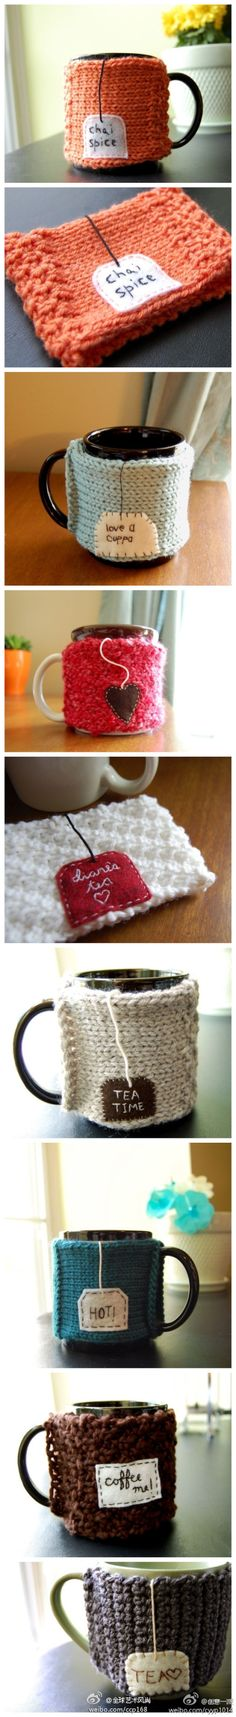 Knitting/embroidery for tea cozies!